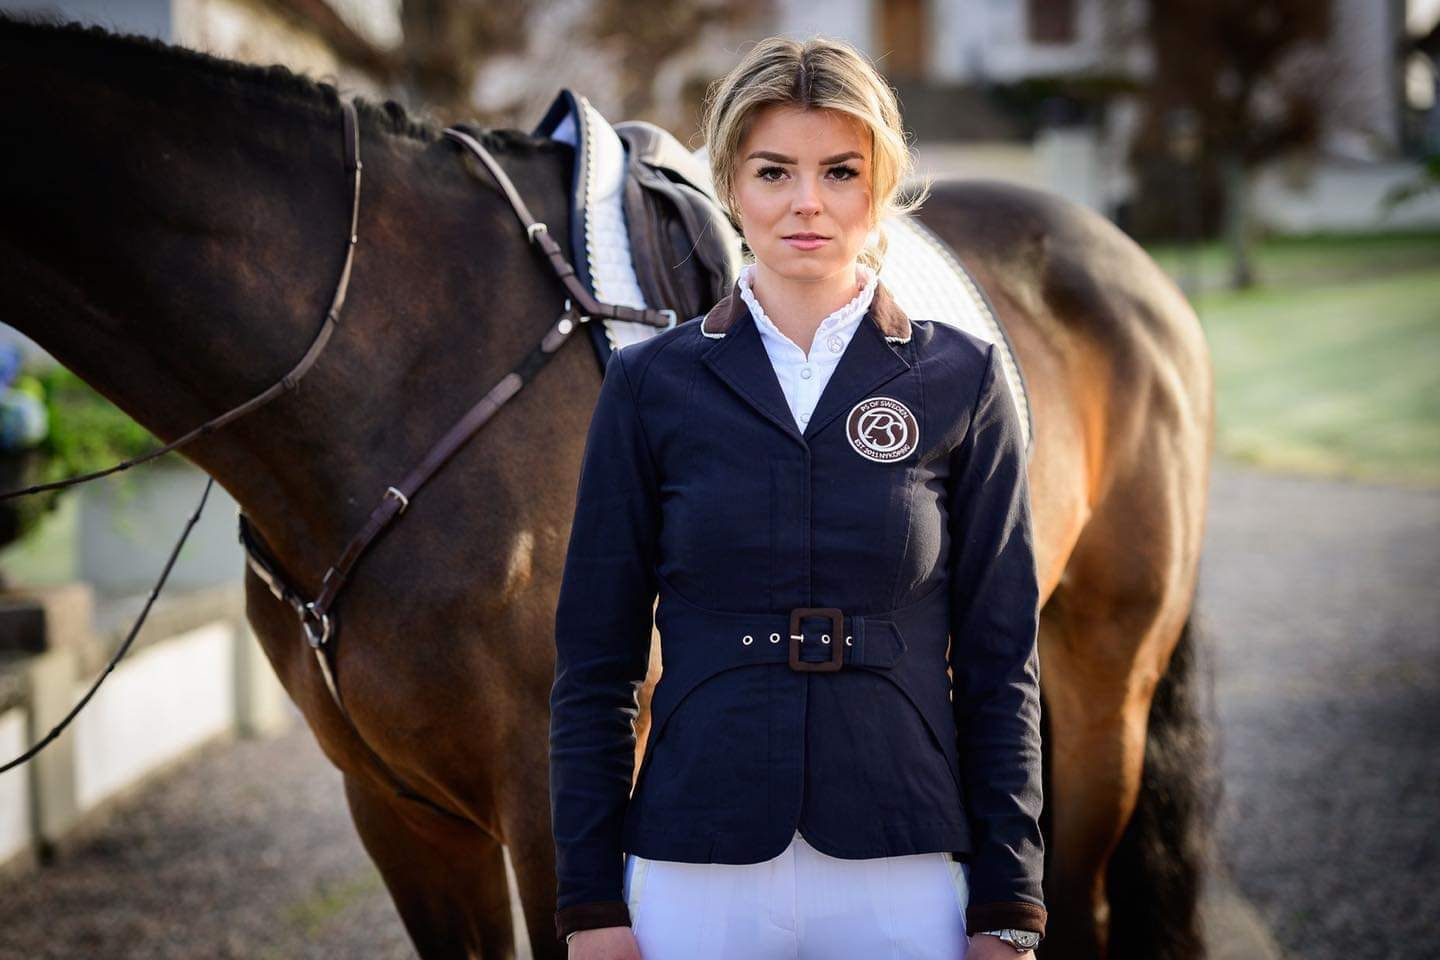 Pin By Bobbyjunior On Equestrian In 2021 Riding Helmets Leather Jacket Leather [ 960 x 1440 Pixel ]